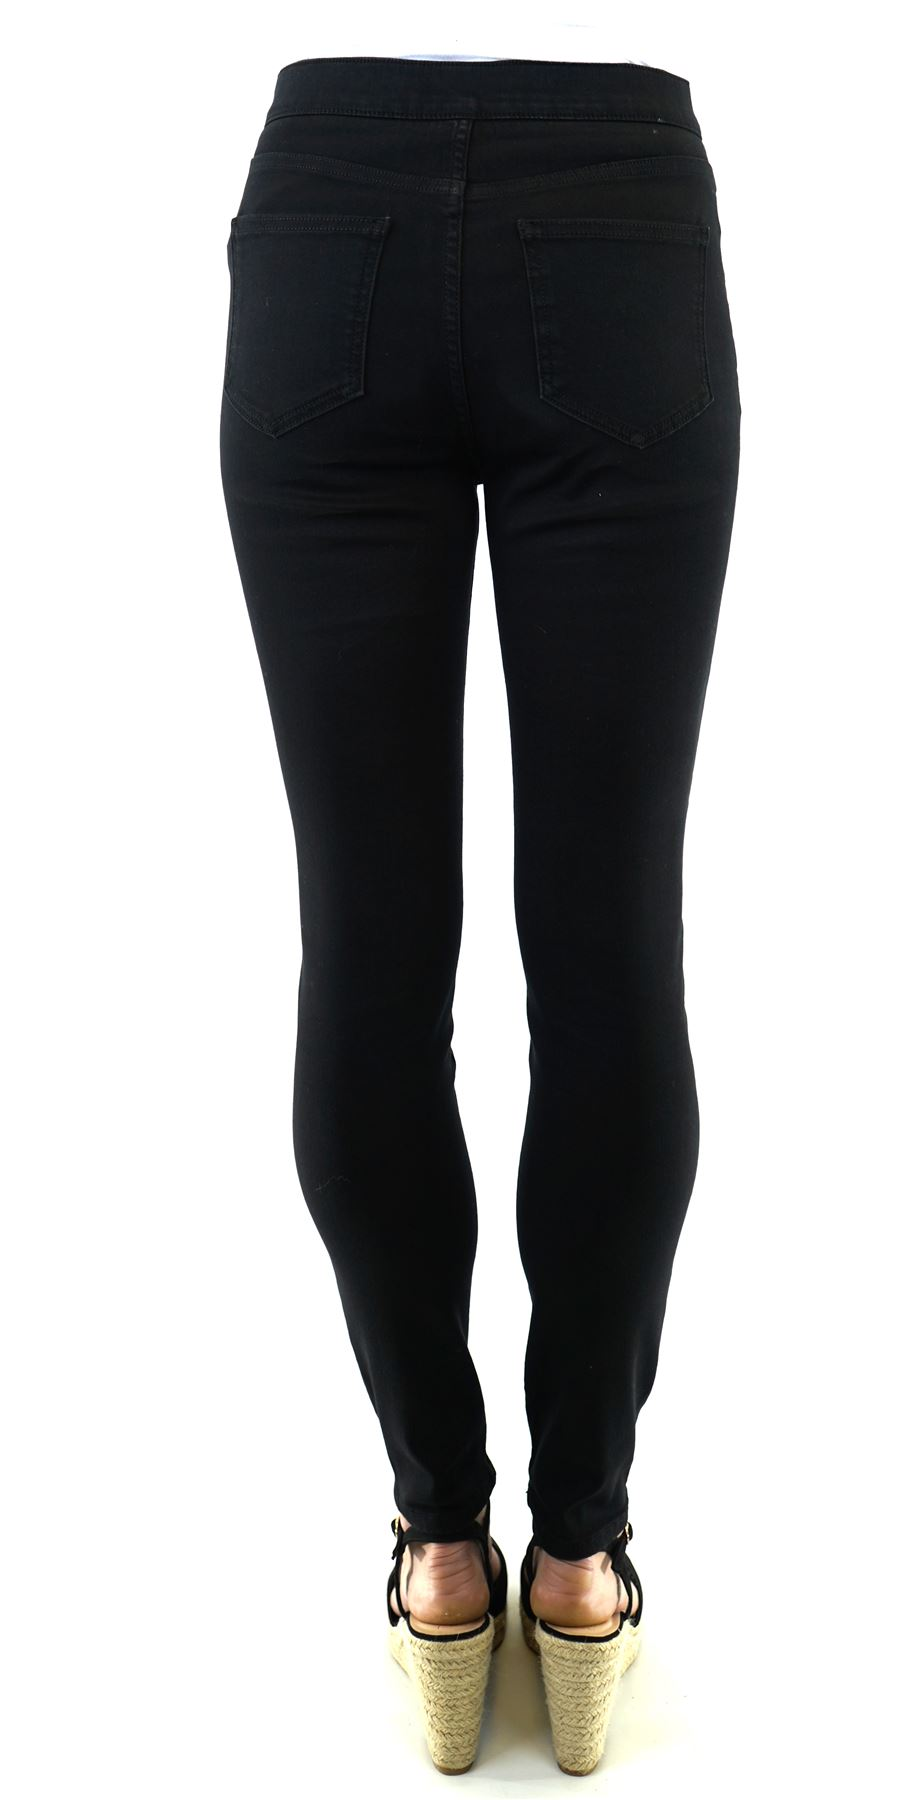 thumbnail 37 - Karen Millen Womens Casual Black Denim Button Jegging Ladies Jean Stylish Gift